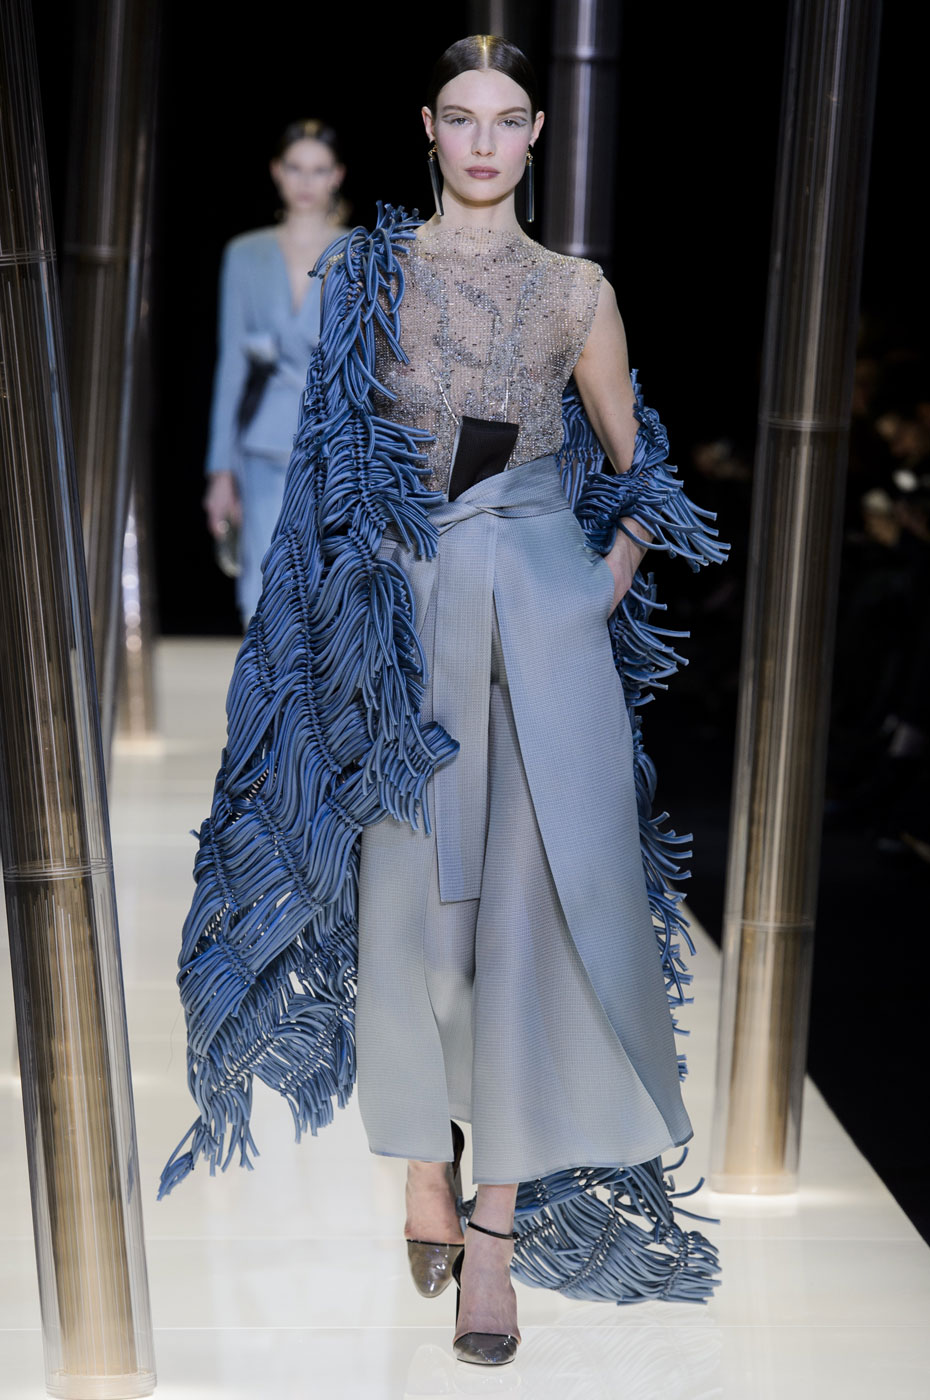 Giorgio-armani-Prive-fashion-runway-show-haute-couture-paris-spring-2015-the-impression-049